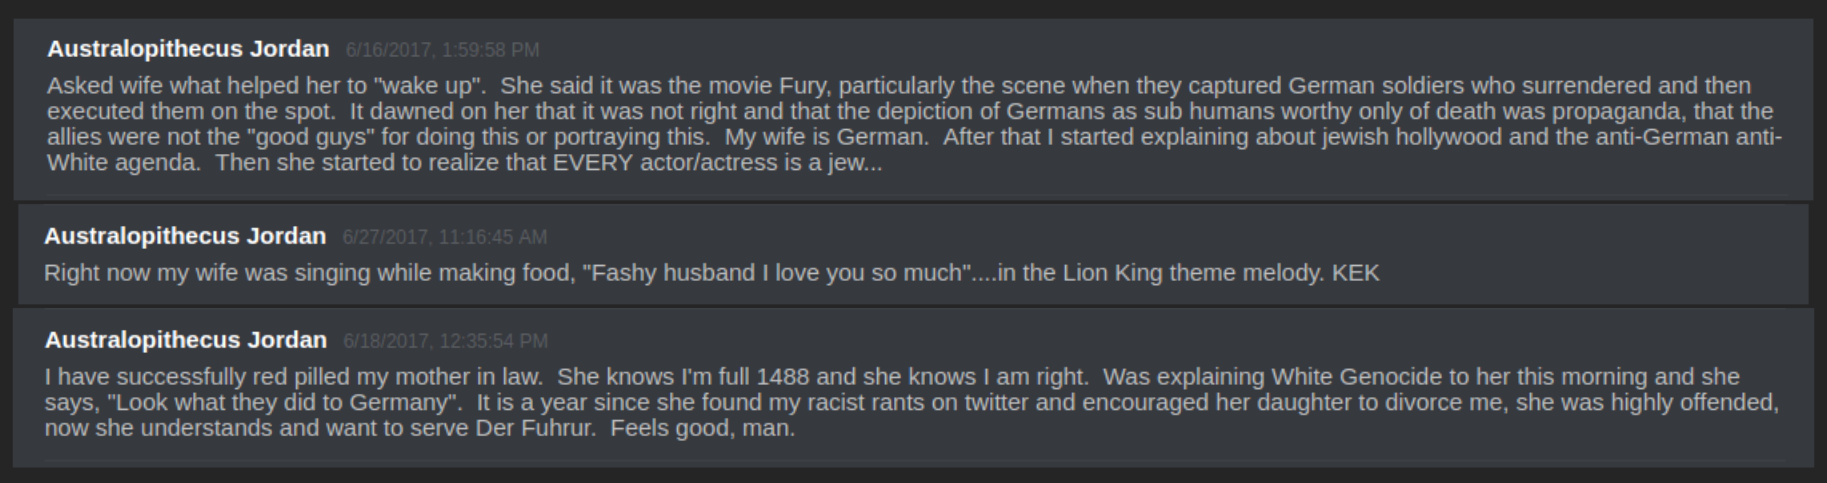 deedub claims his wife is amenable to nazi ideology